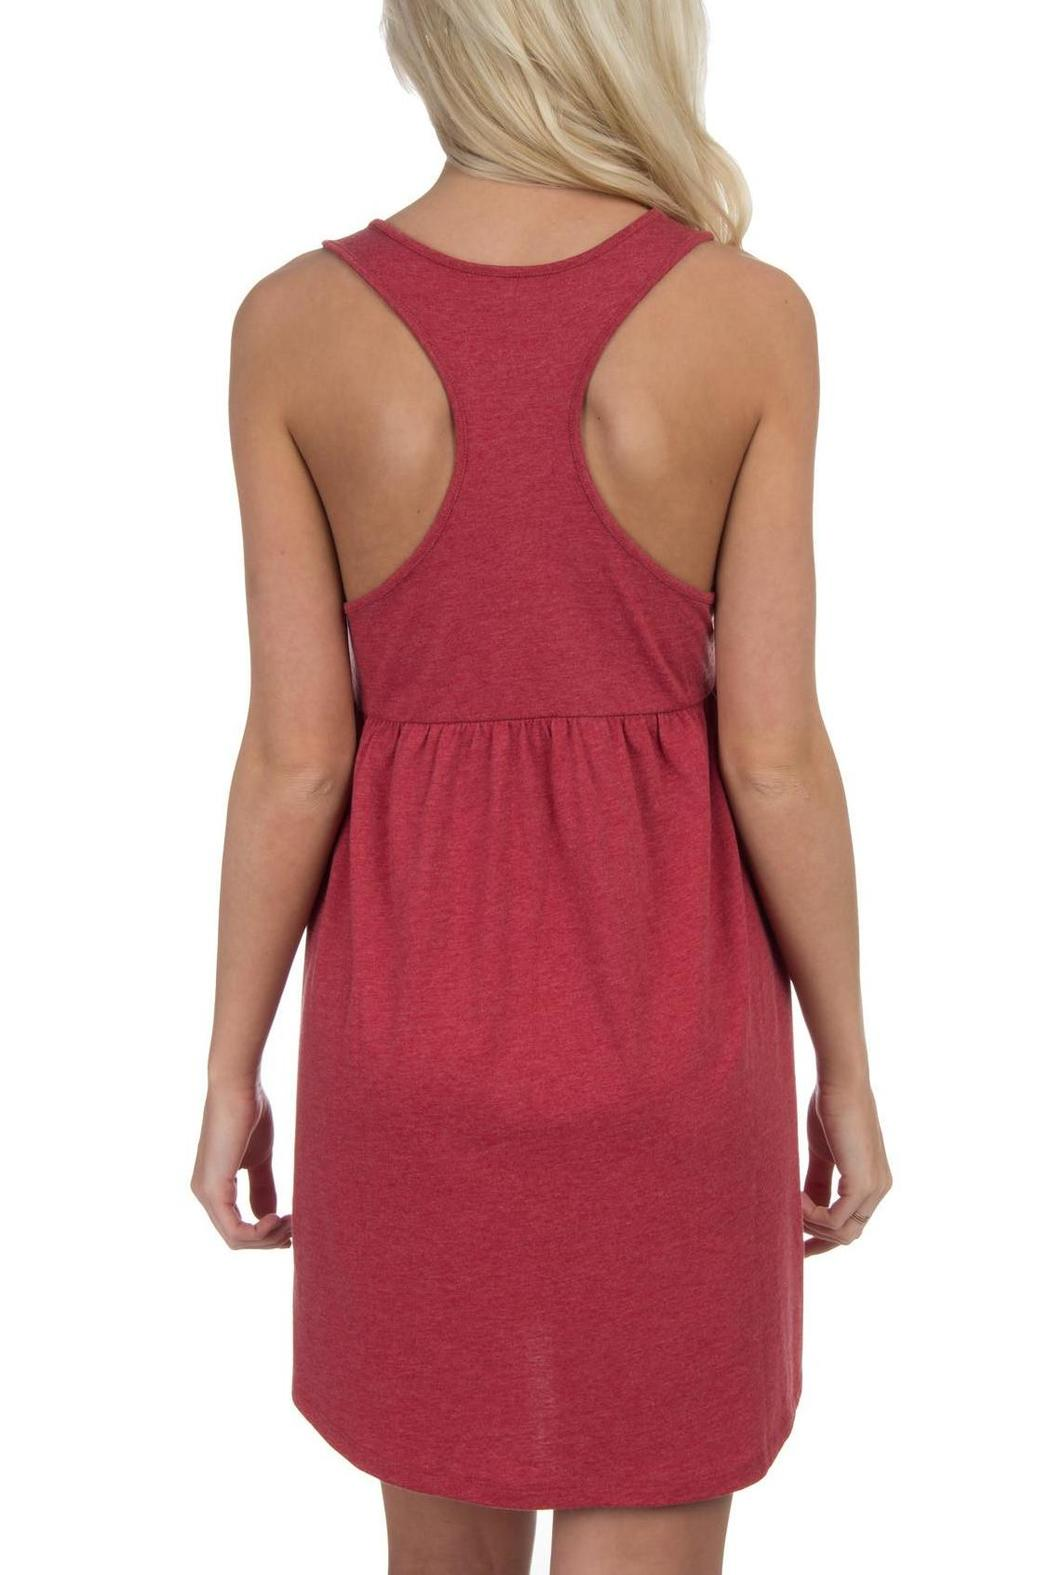 Lauren James Tailgate Dress - Front Full Image